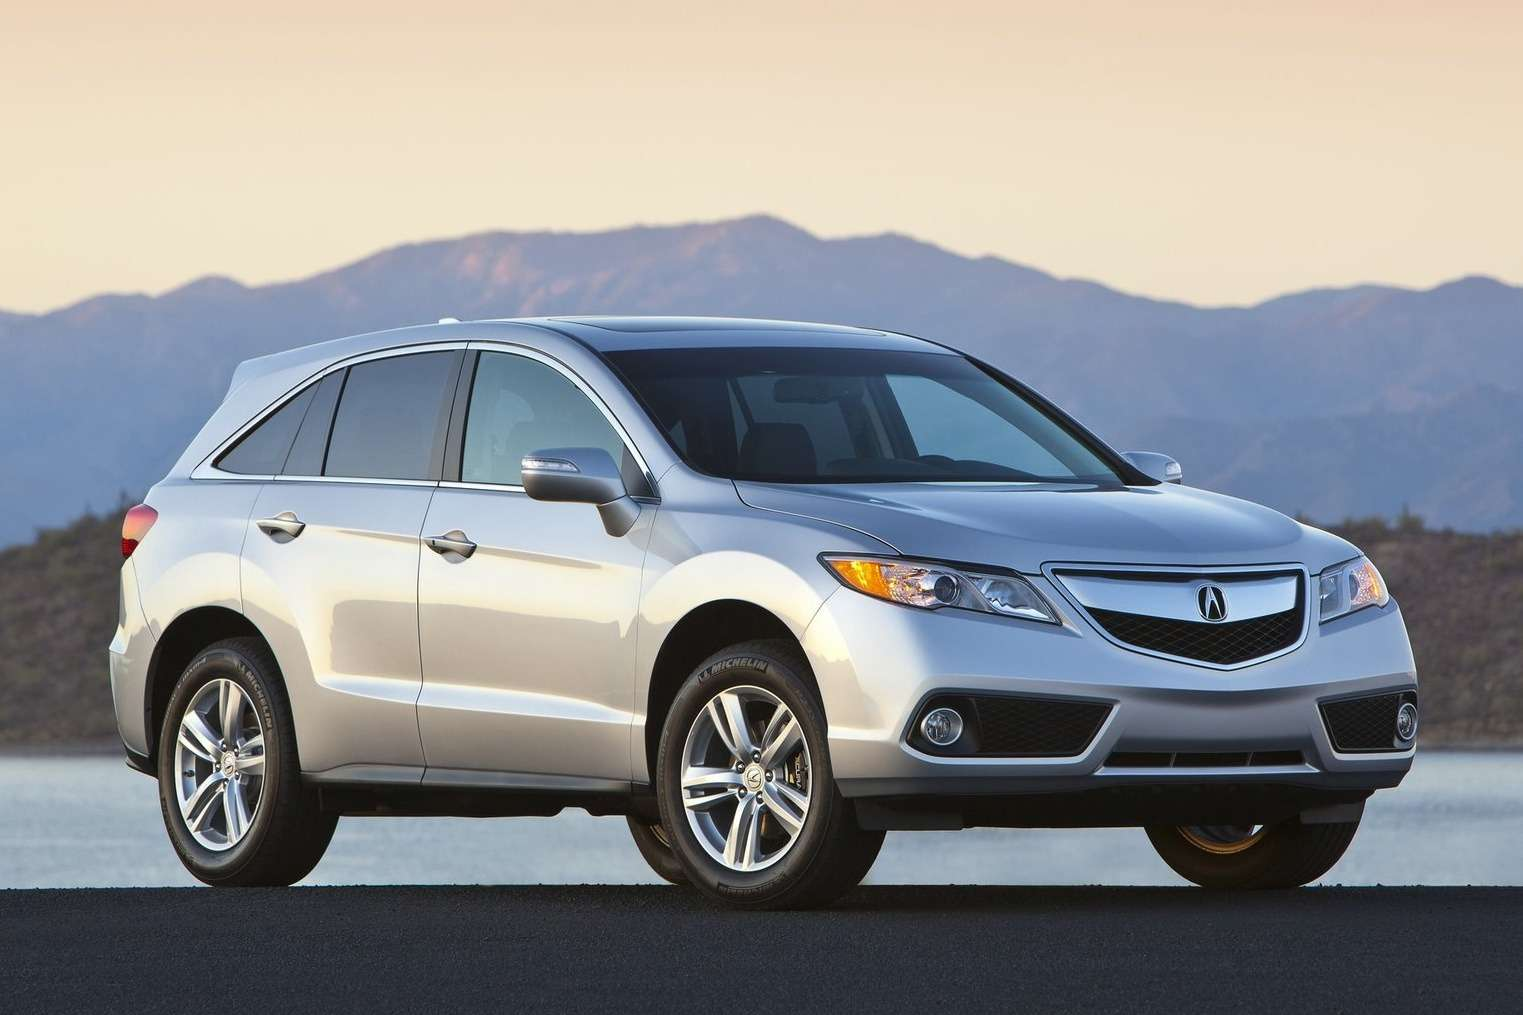 Acura-RDX_2013_1600x1200_wallpaper_04